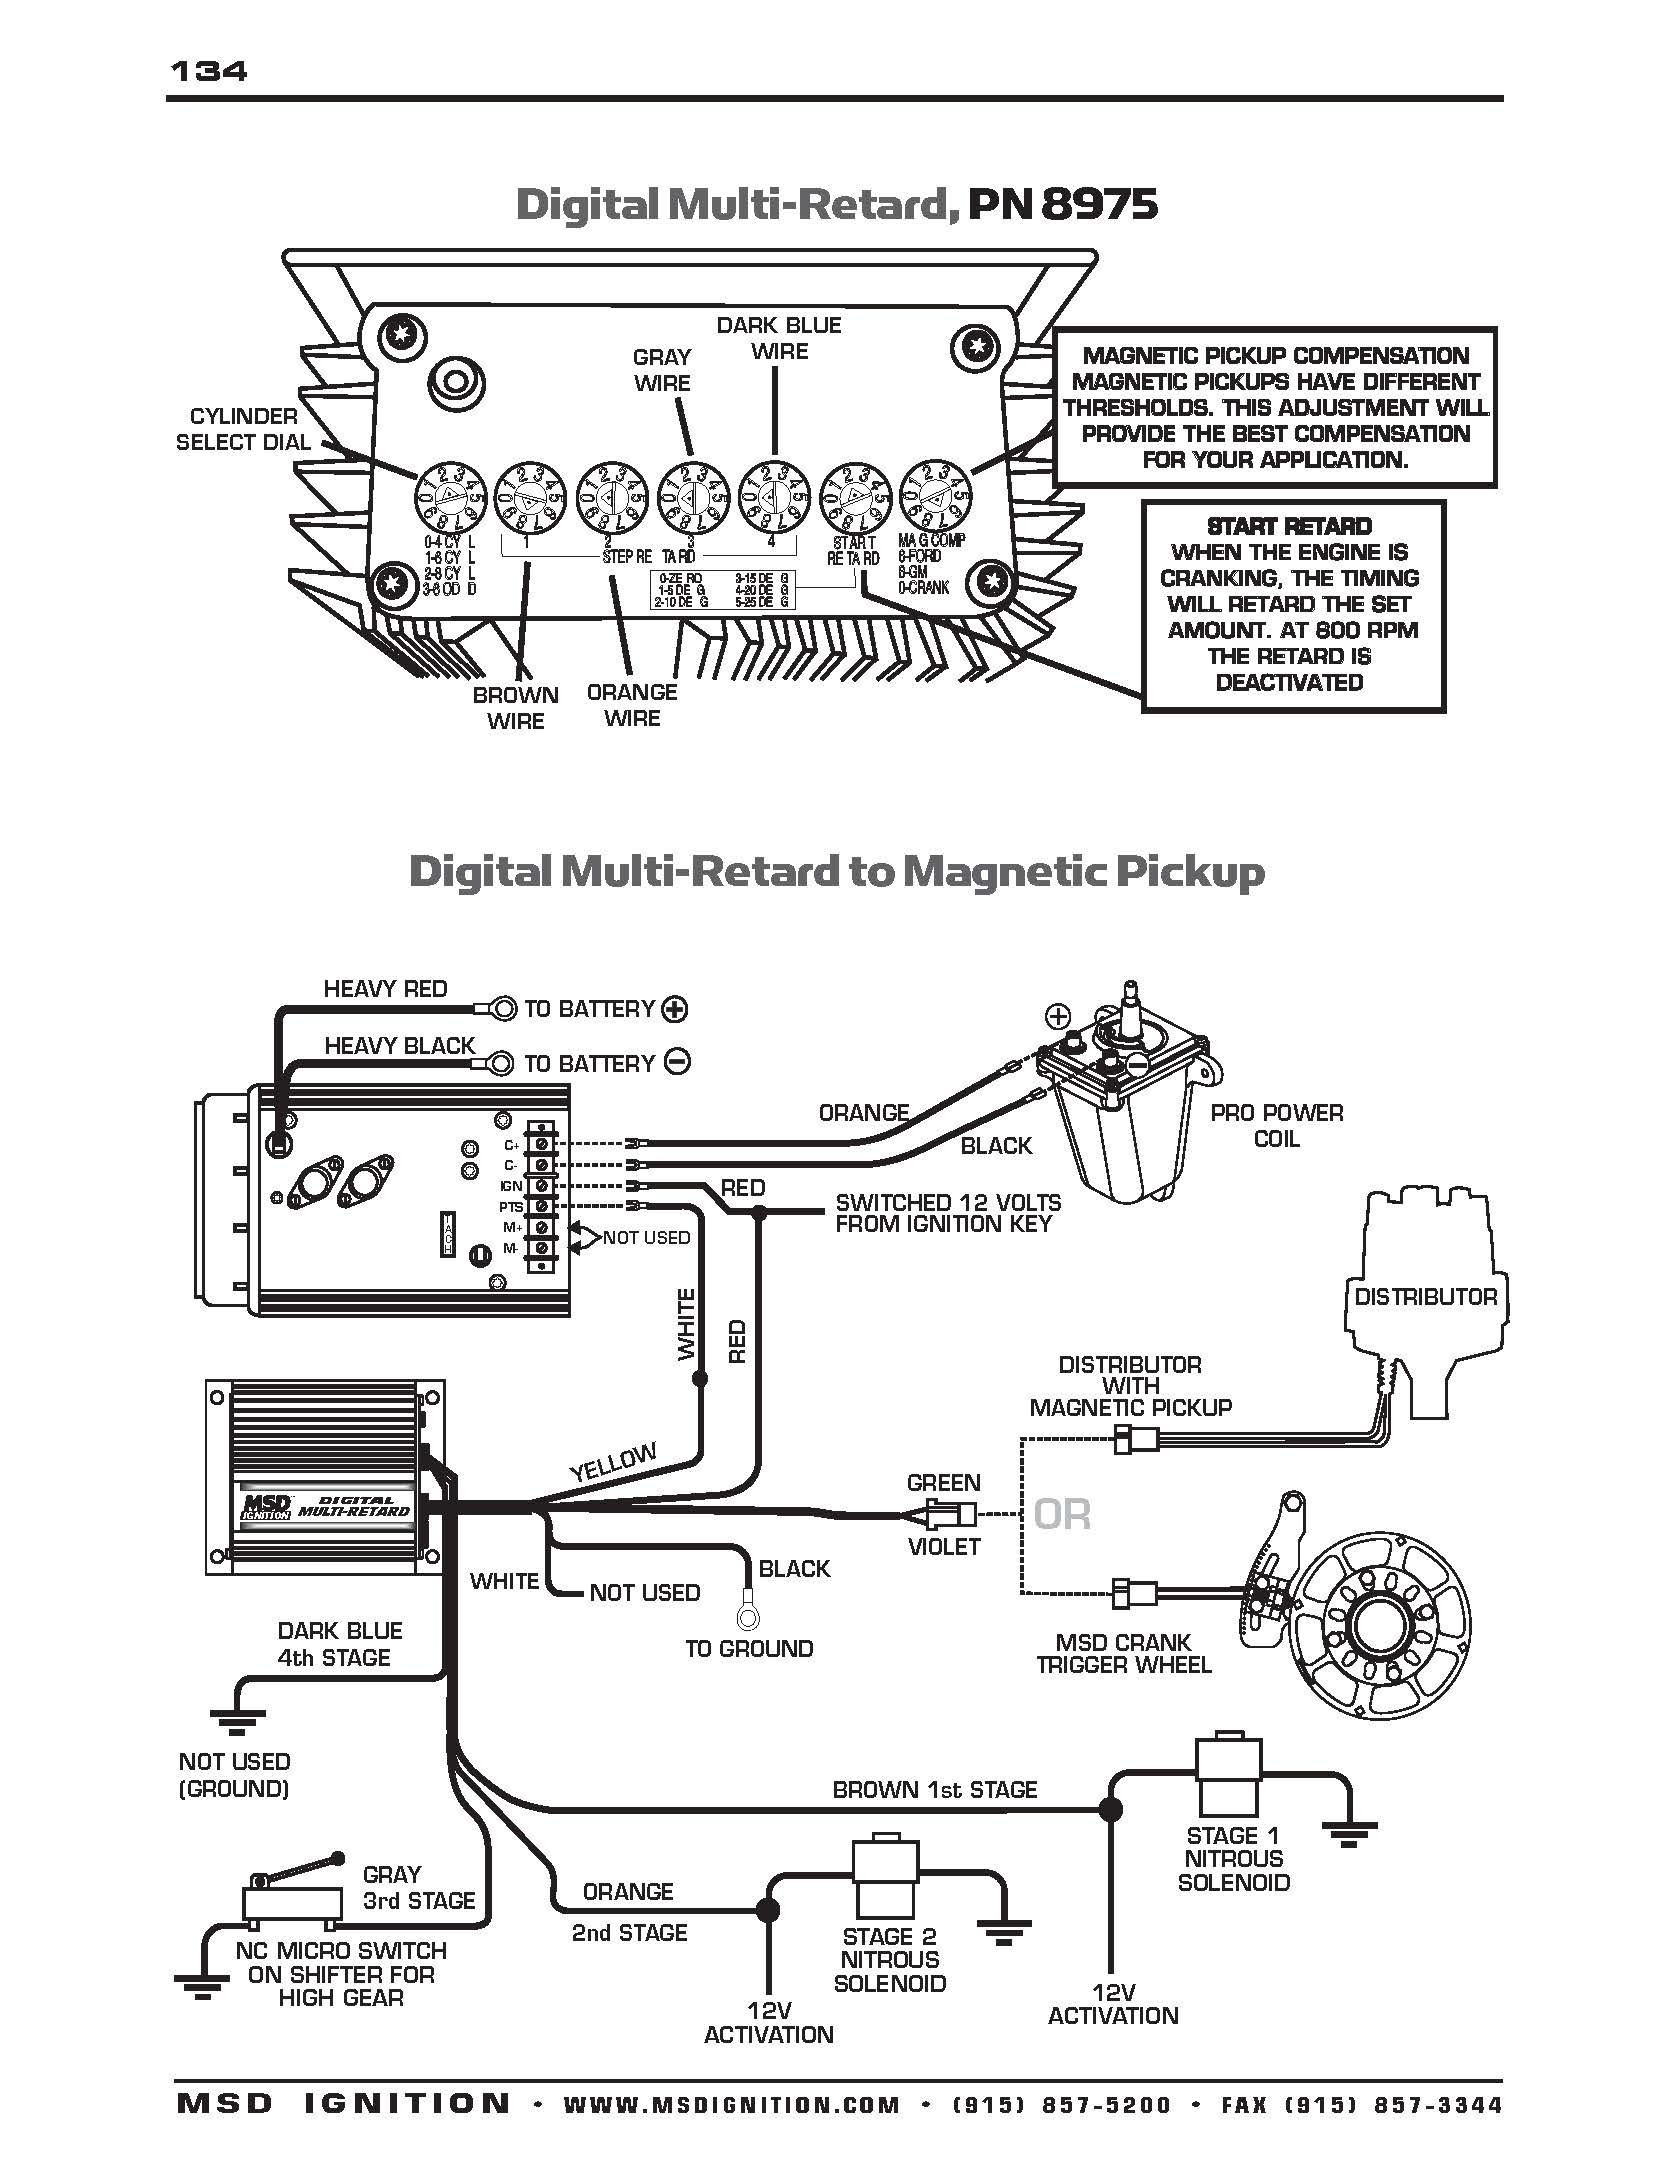 msd digital 6 plus ignition box furthermore msd ignition wiring rh bleongroup co